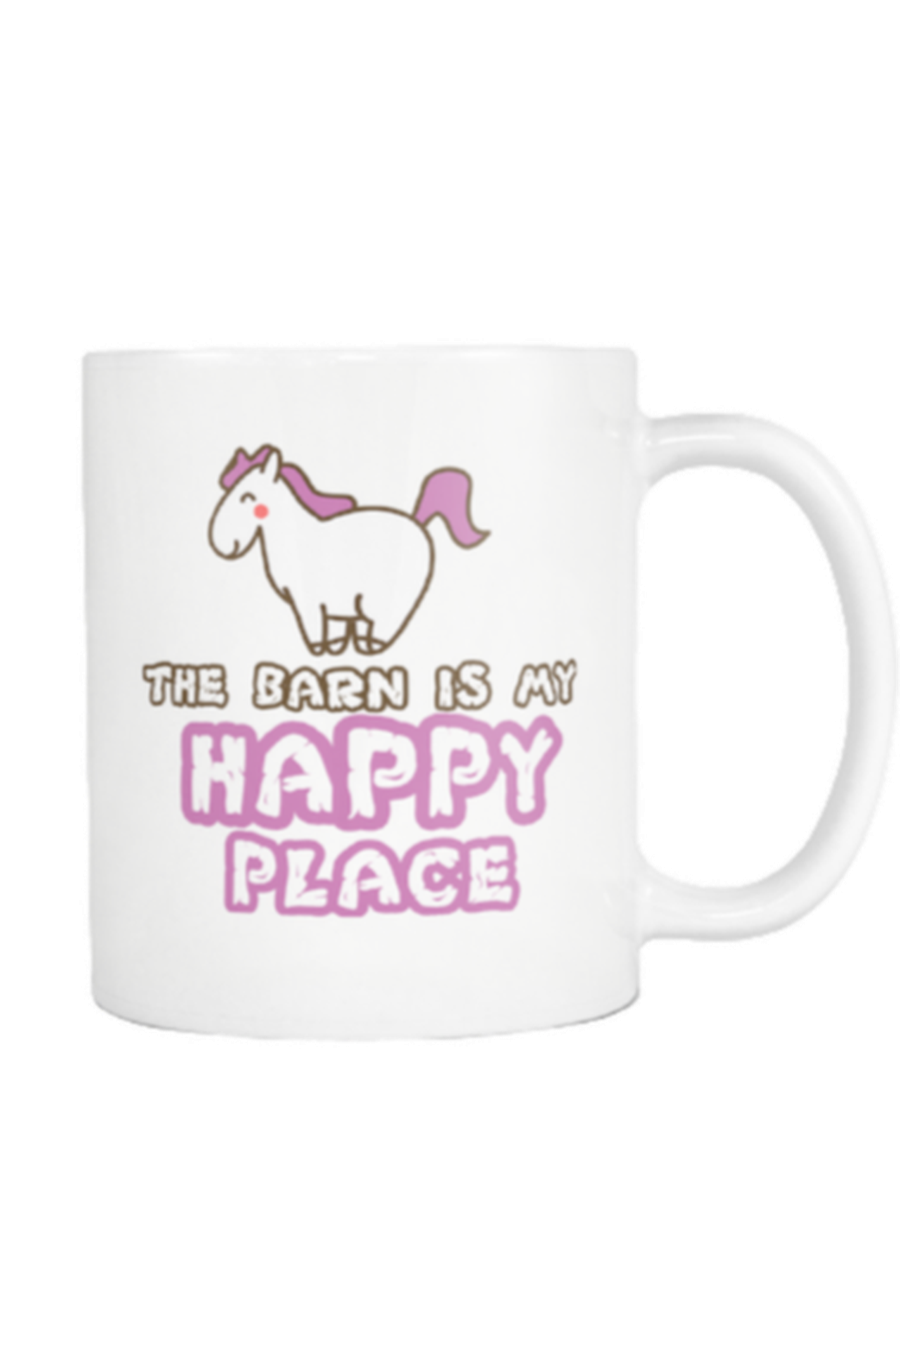 The Barn Is My Happy Place - Mug